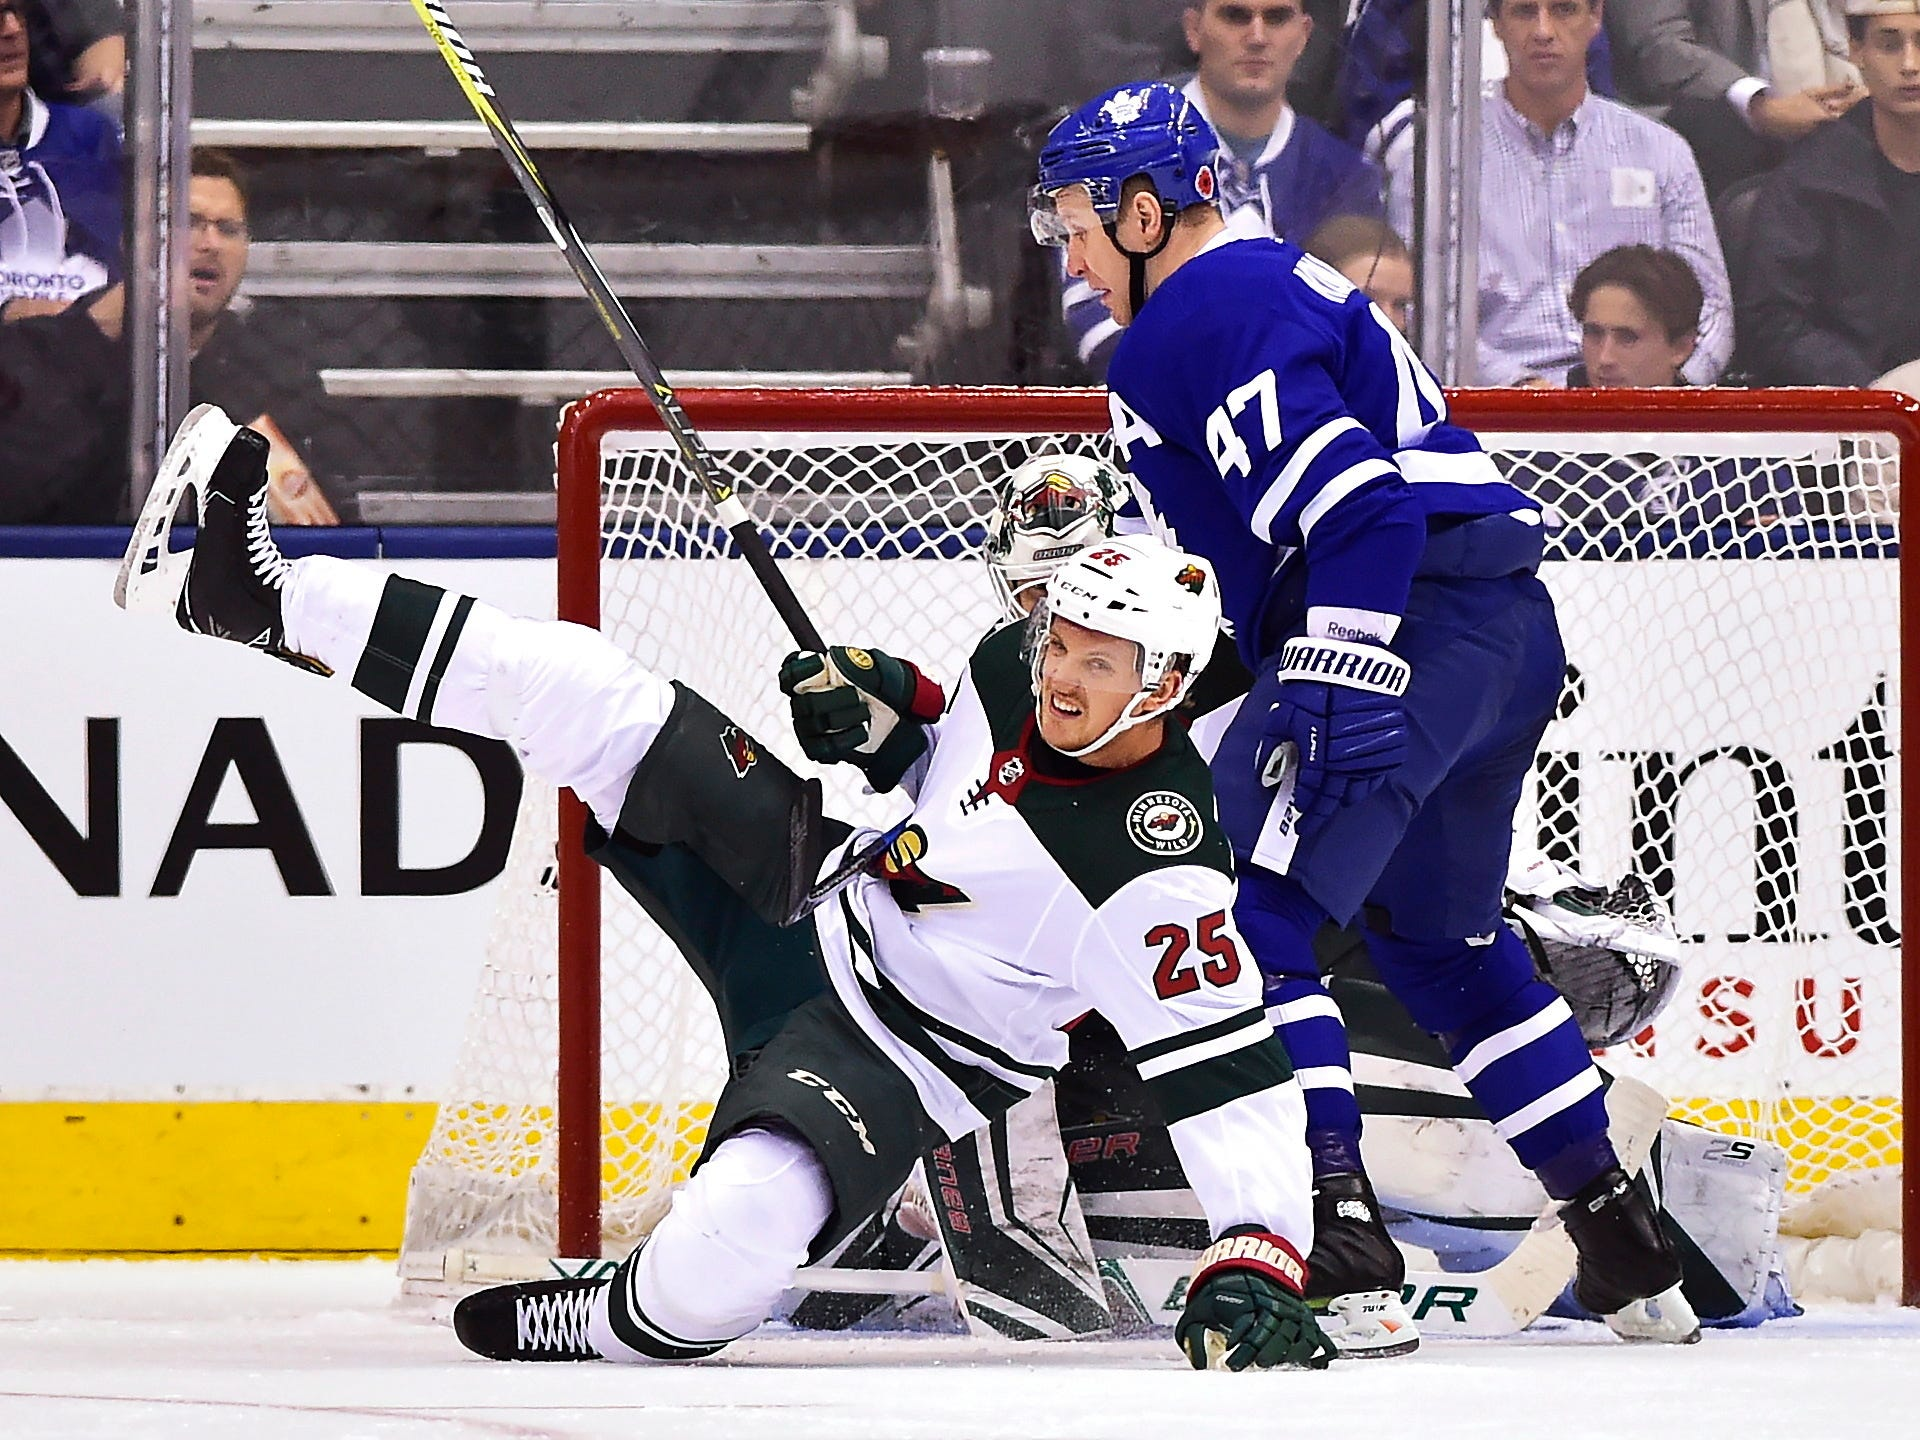 Frederik Andersen makes 35 saves, Maple Leafs beat Wild 4-2